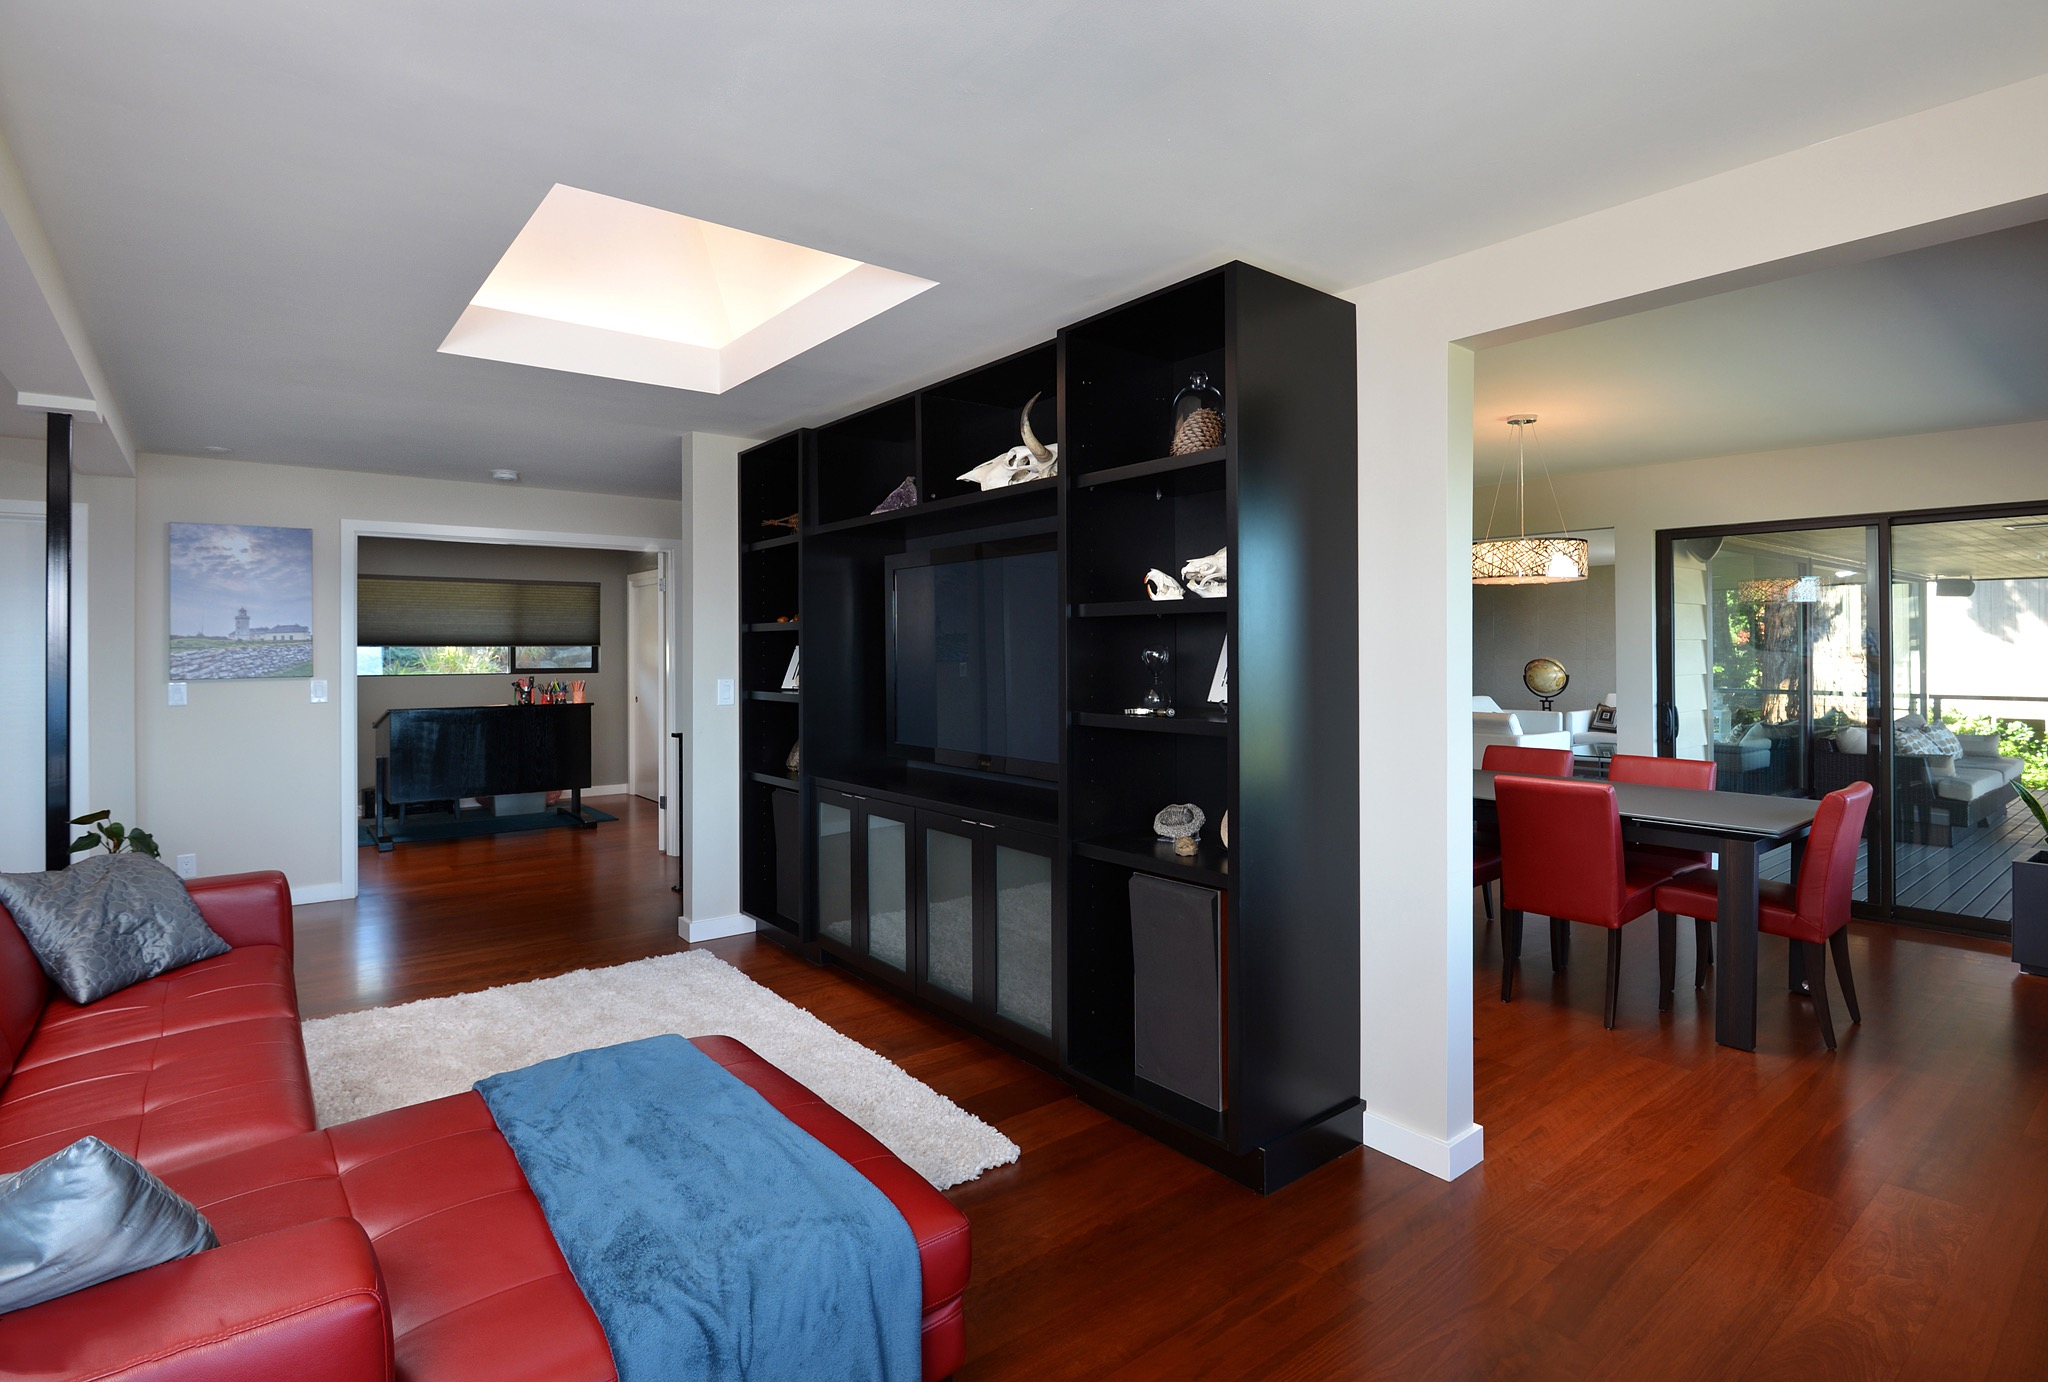 Contemporary Media Room With Stylish Entertainment Center (Image 3 of 15)